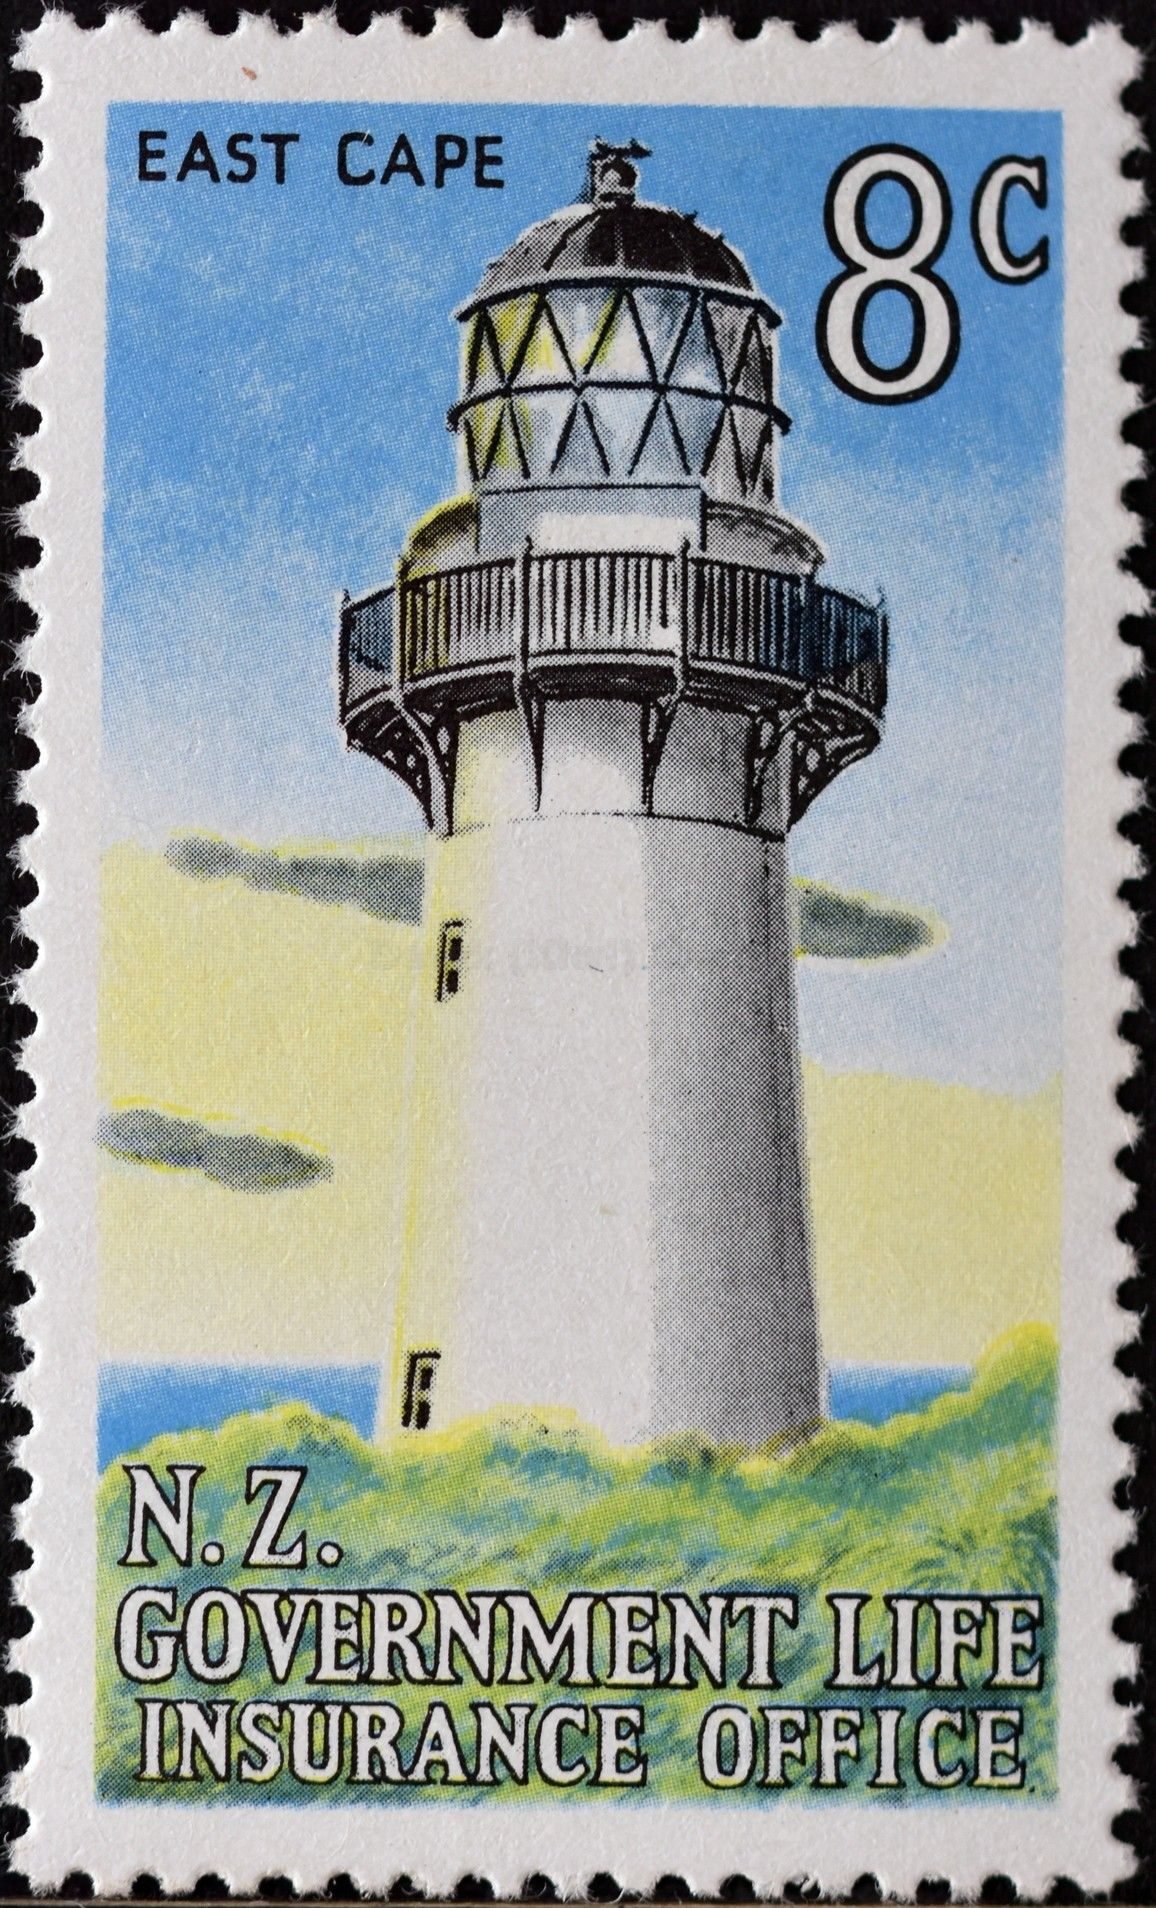 Pin by Jimmie Nix on train stamps (With images) East